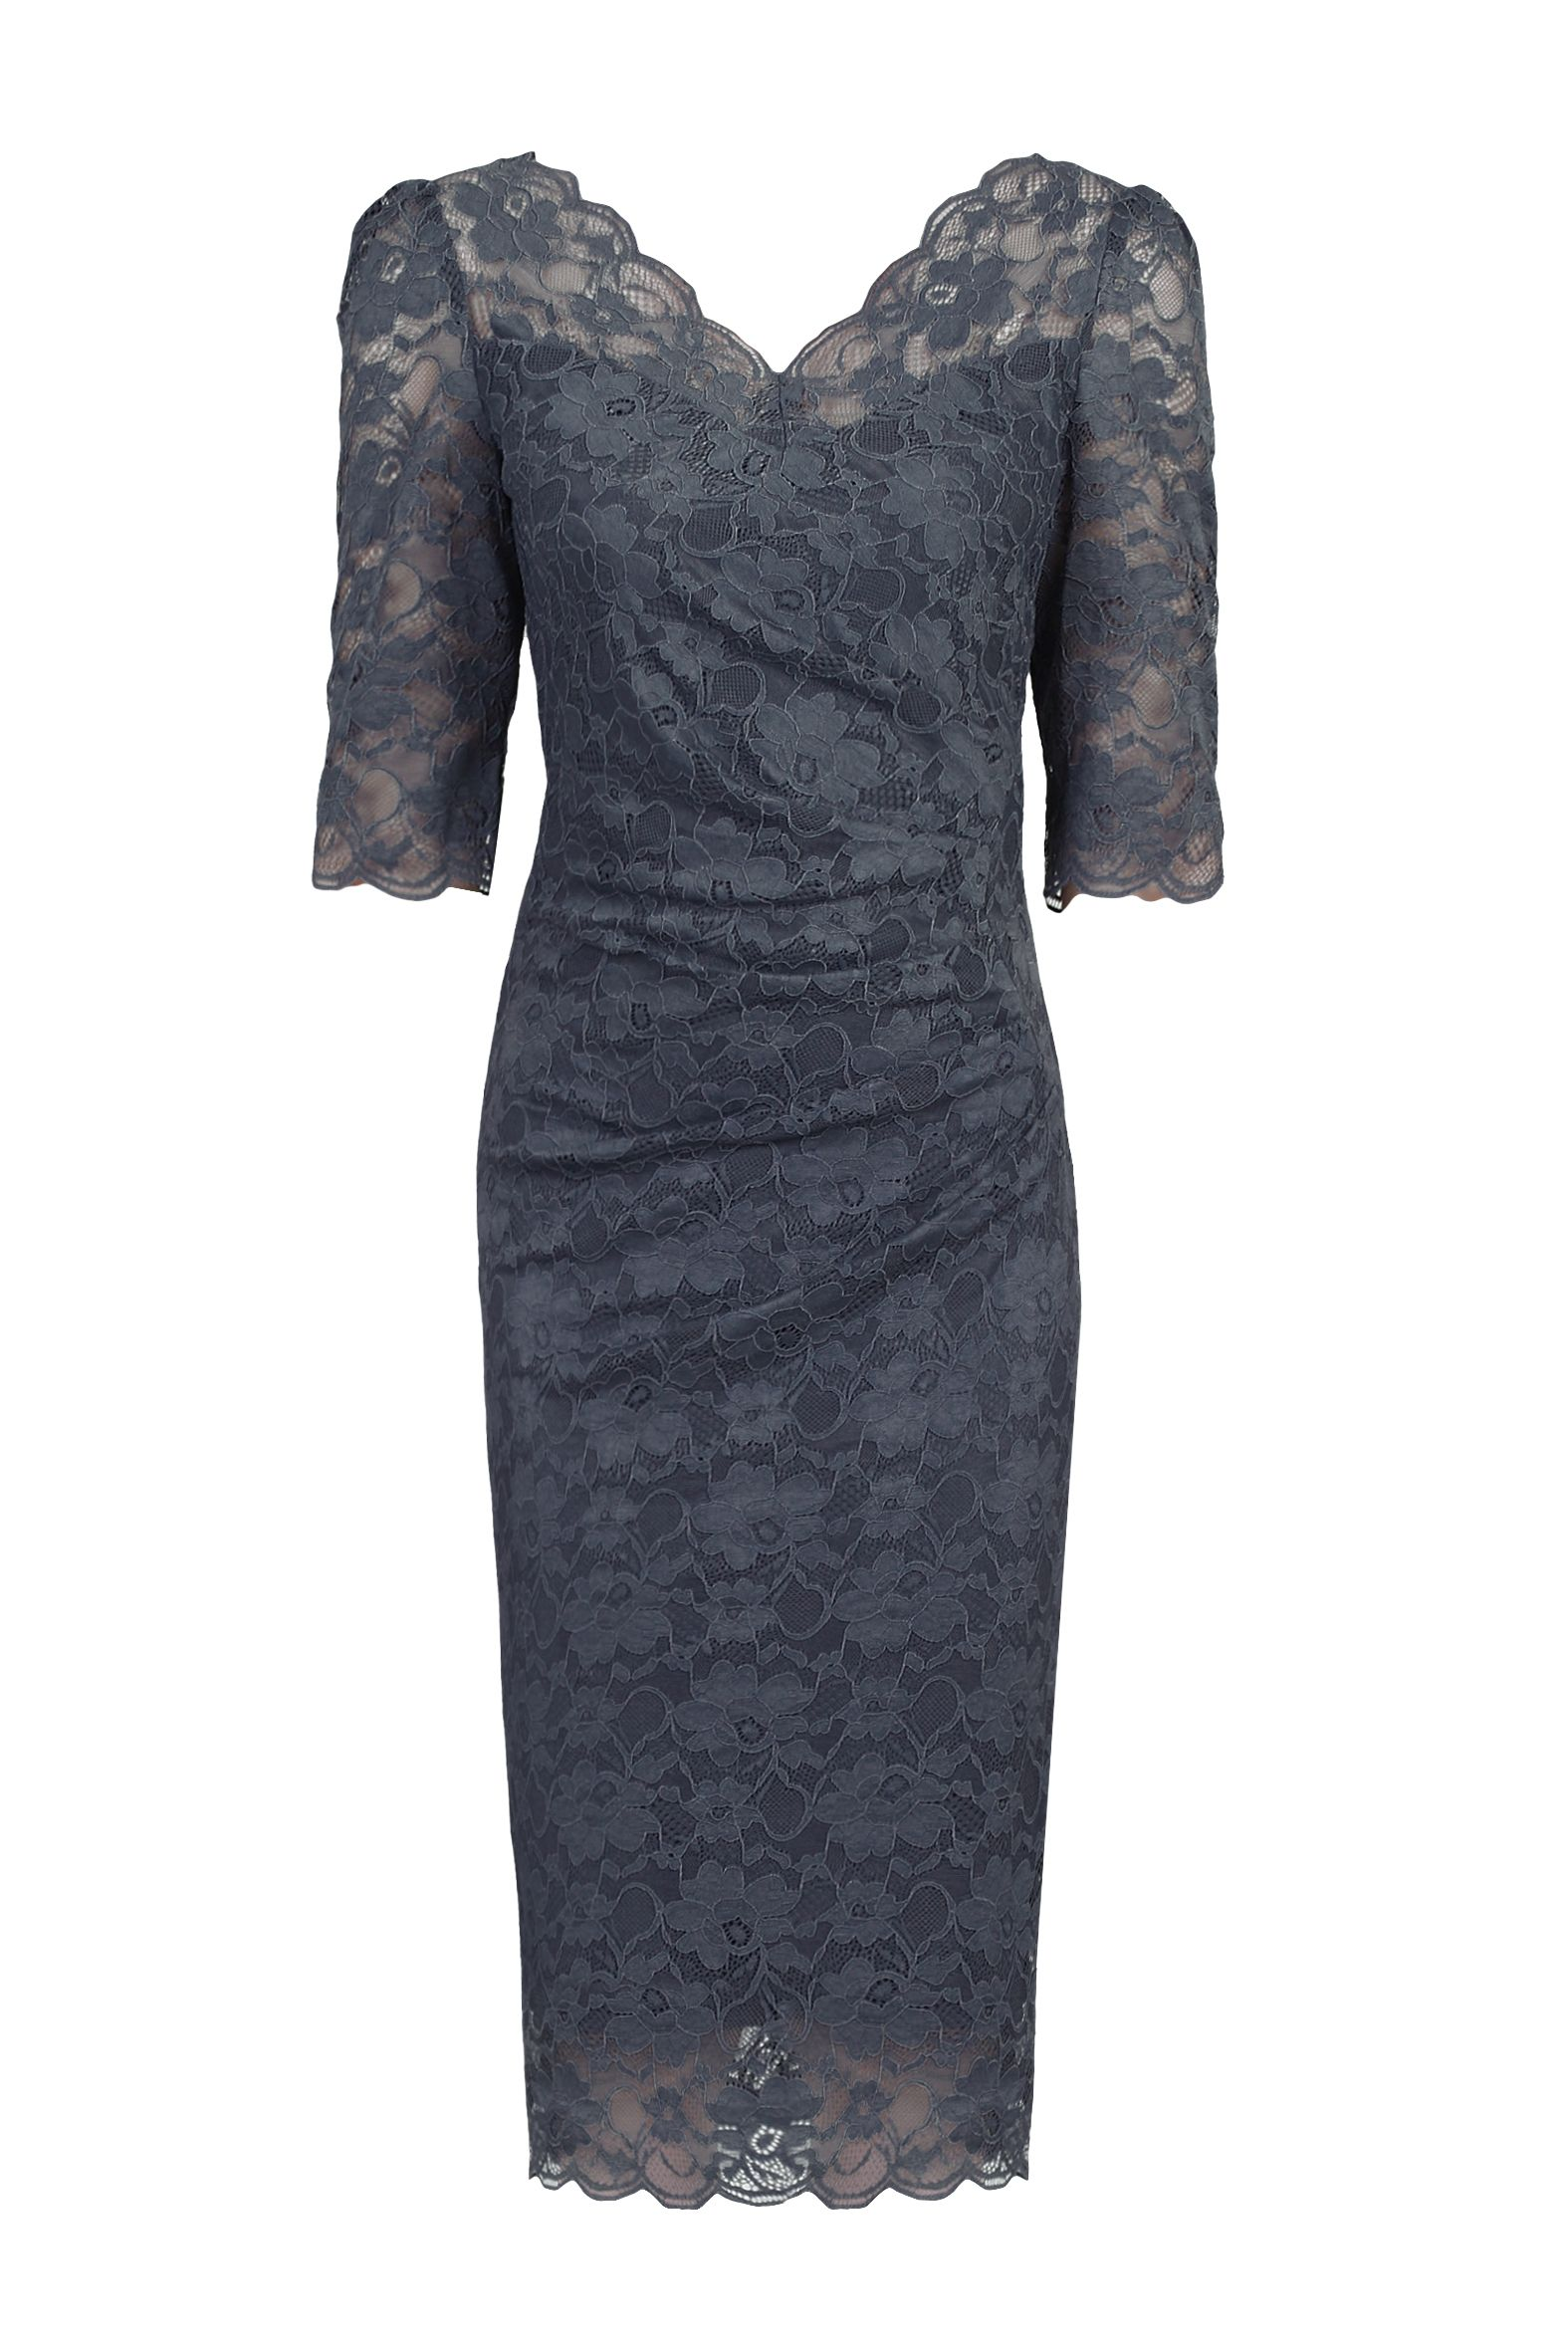 Jolie Moi 3/4 Sleeve Scalloped Lace Dress, Dark Grey